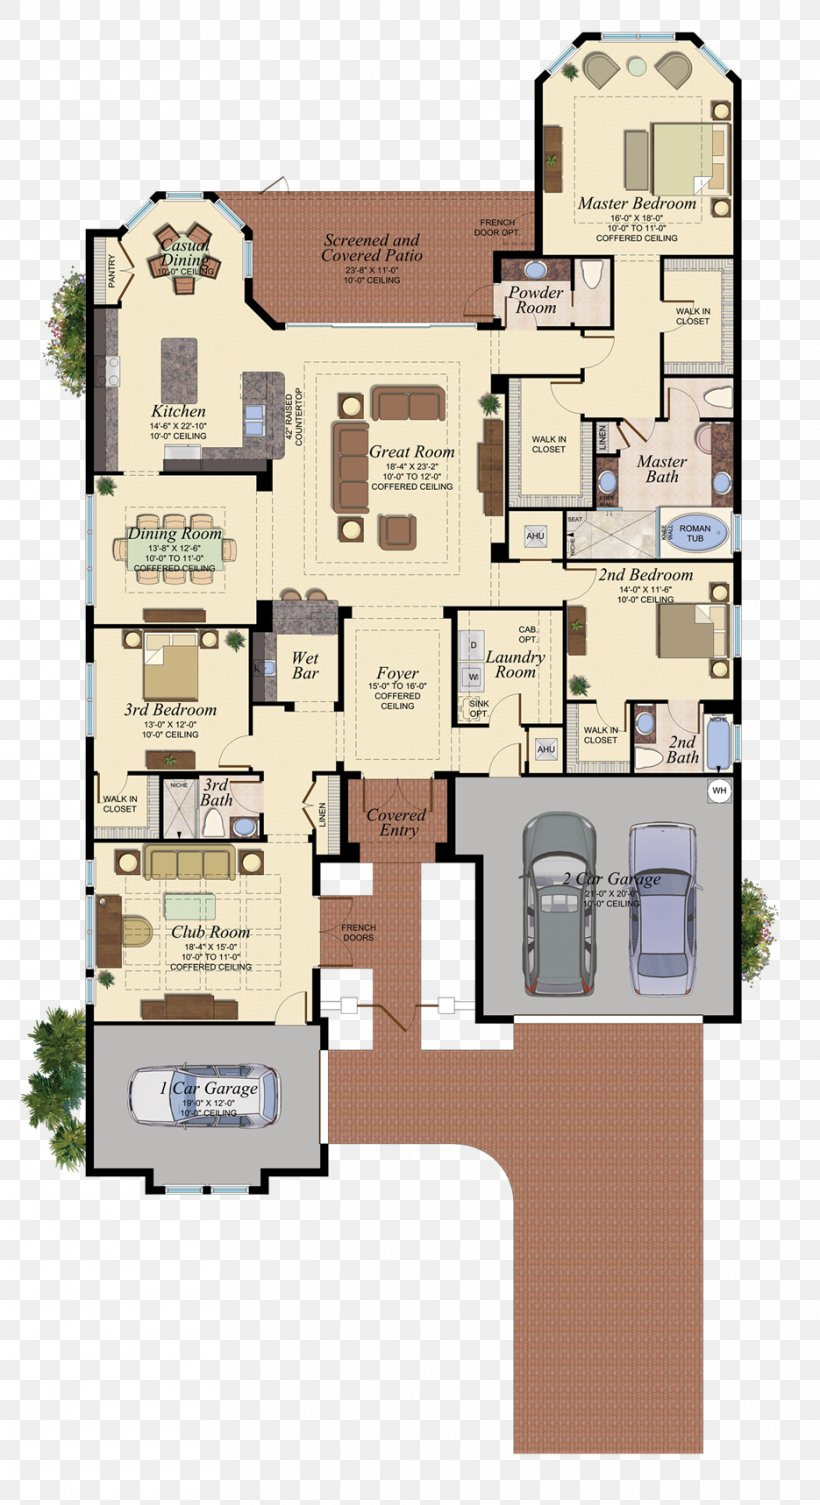 House and Floor Plans New Floor Plan Naples House Real Estate Property Png